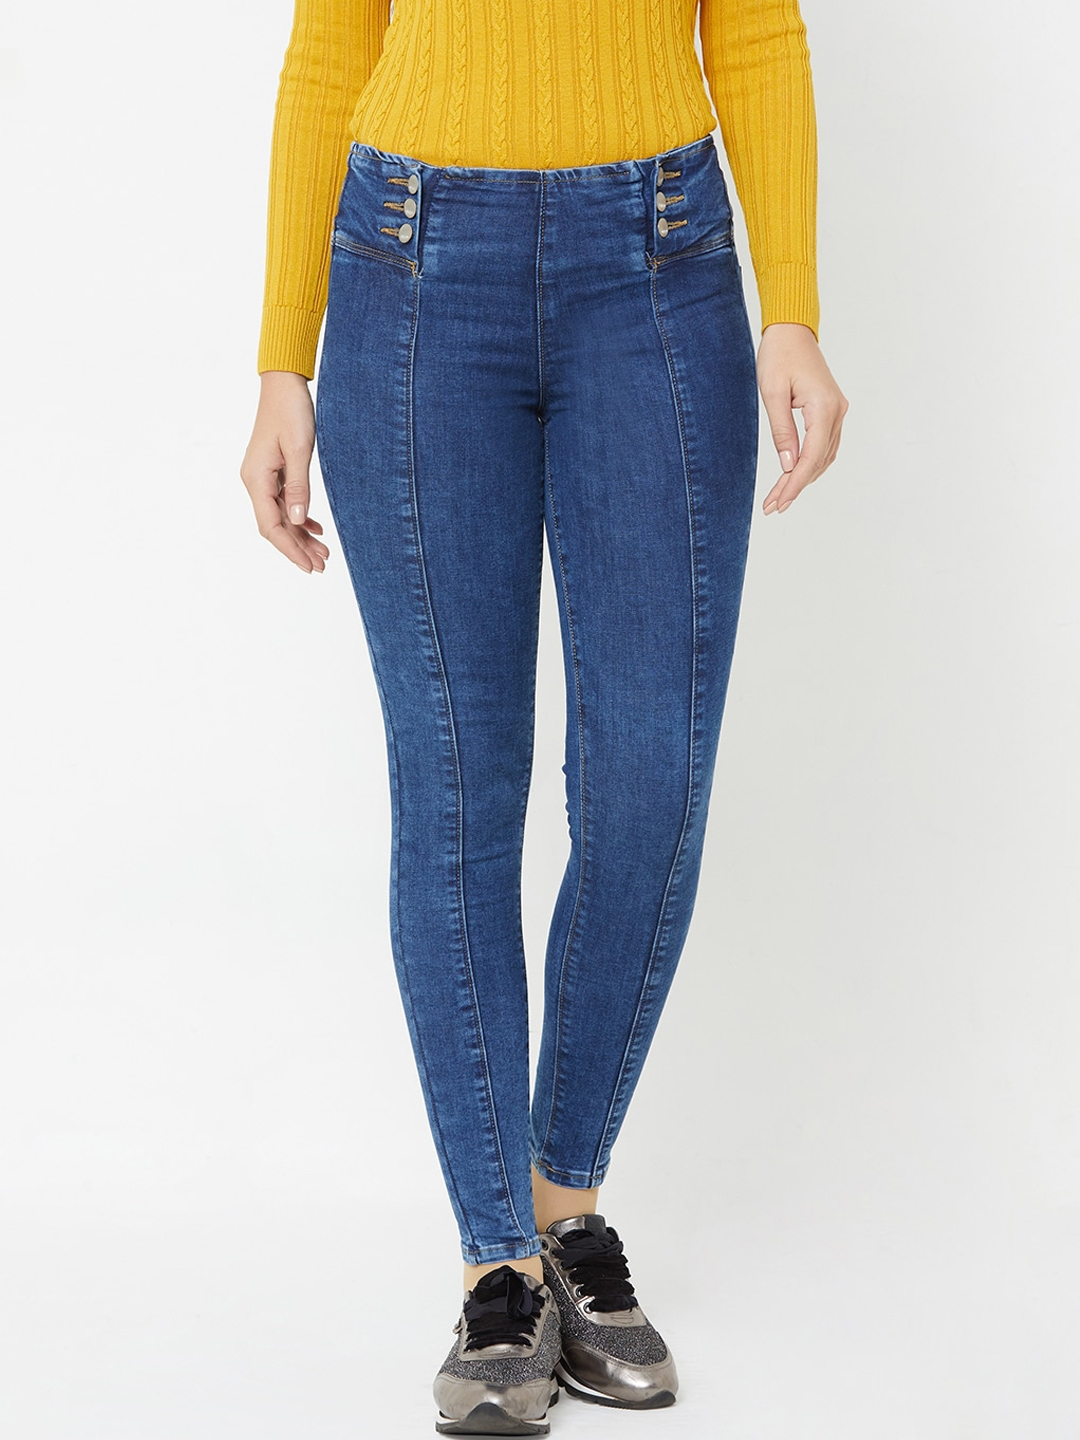 Kraus Jeans Women Blue Skinny Fit Jeans